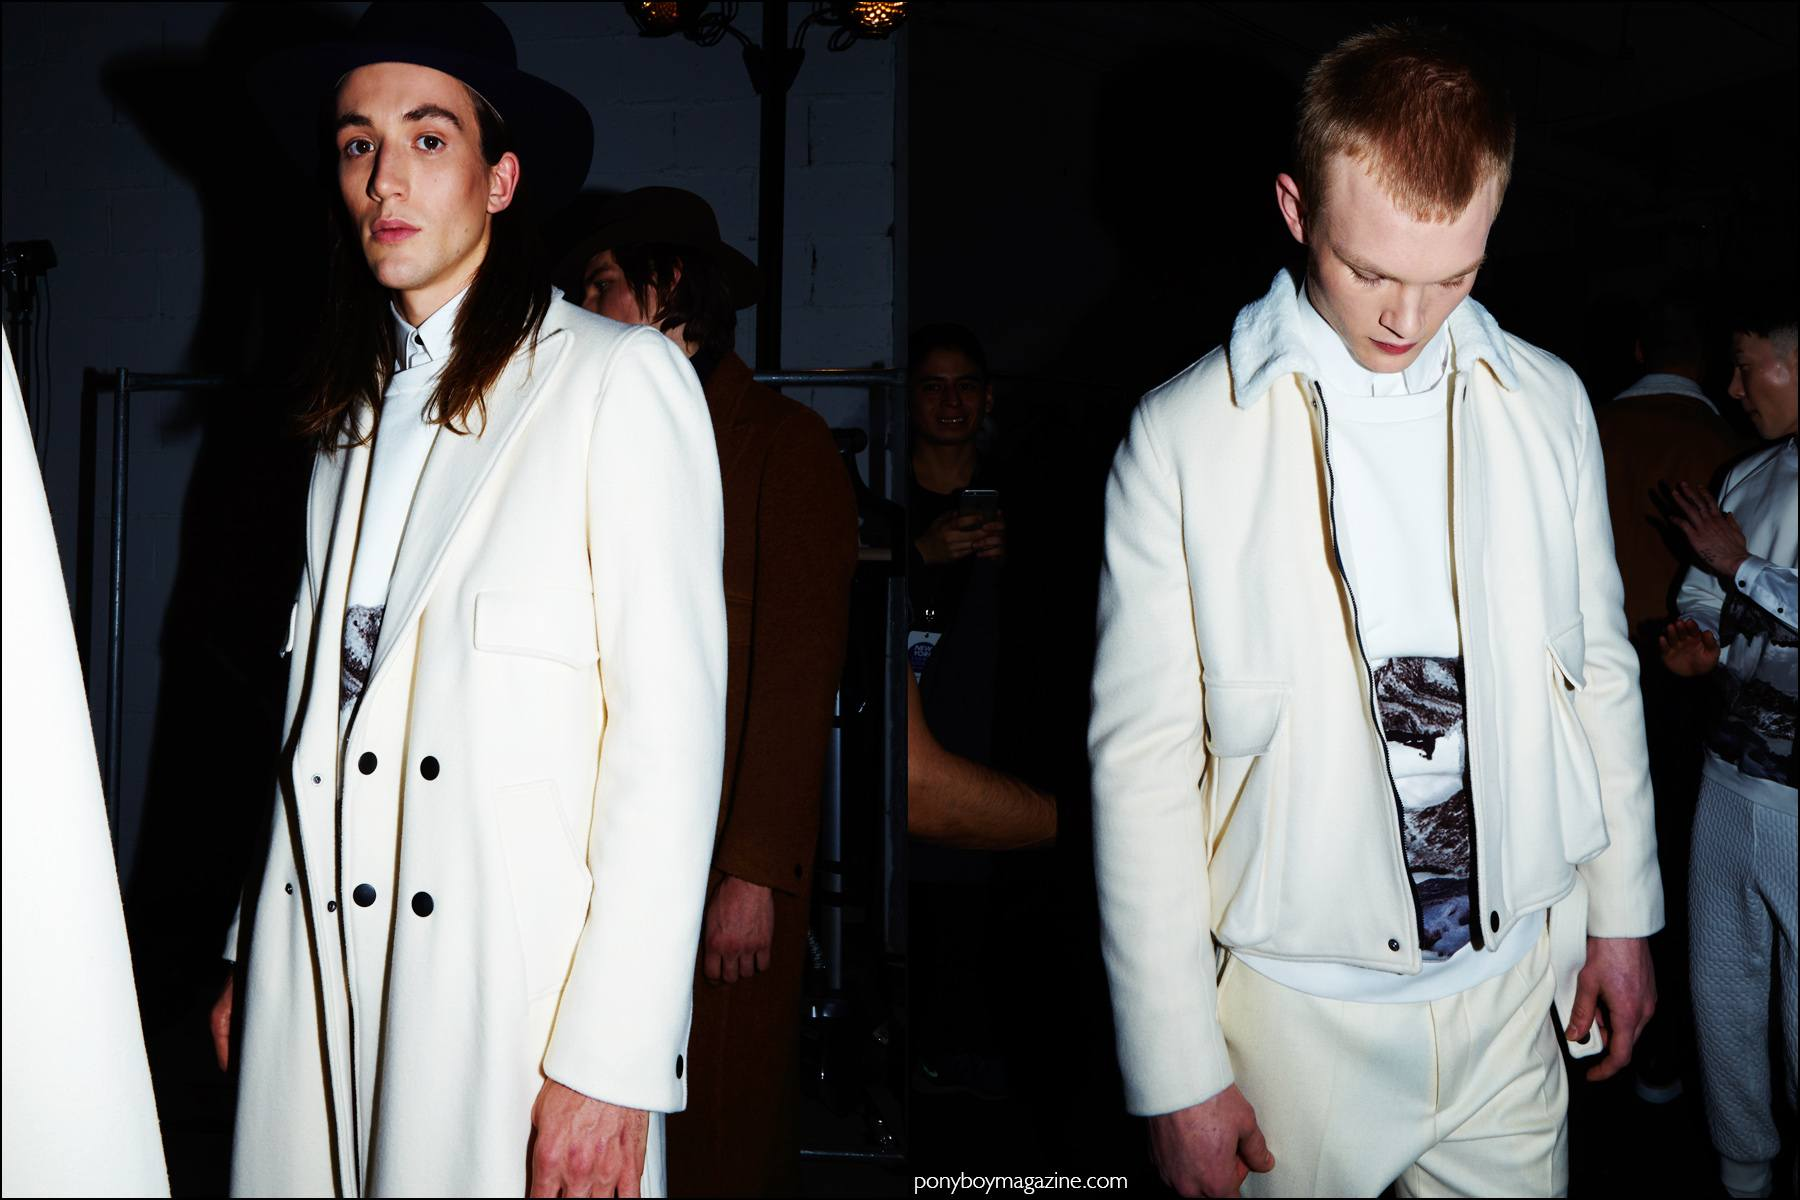 Models Lucian Clifforth and Alijah Harrison photographed in off-white menswear, photographed backstage at Carlos Campos F/W16 show. Photography by Alexander Thompson for Ponyboy magazine NY.